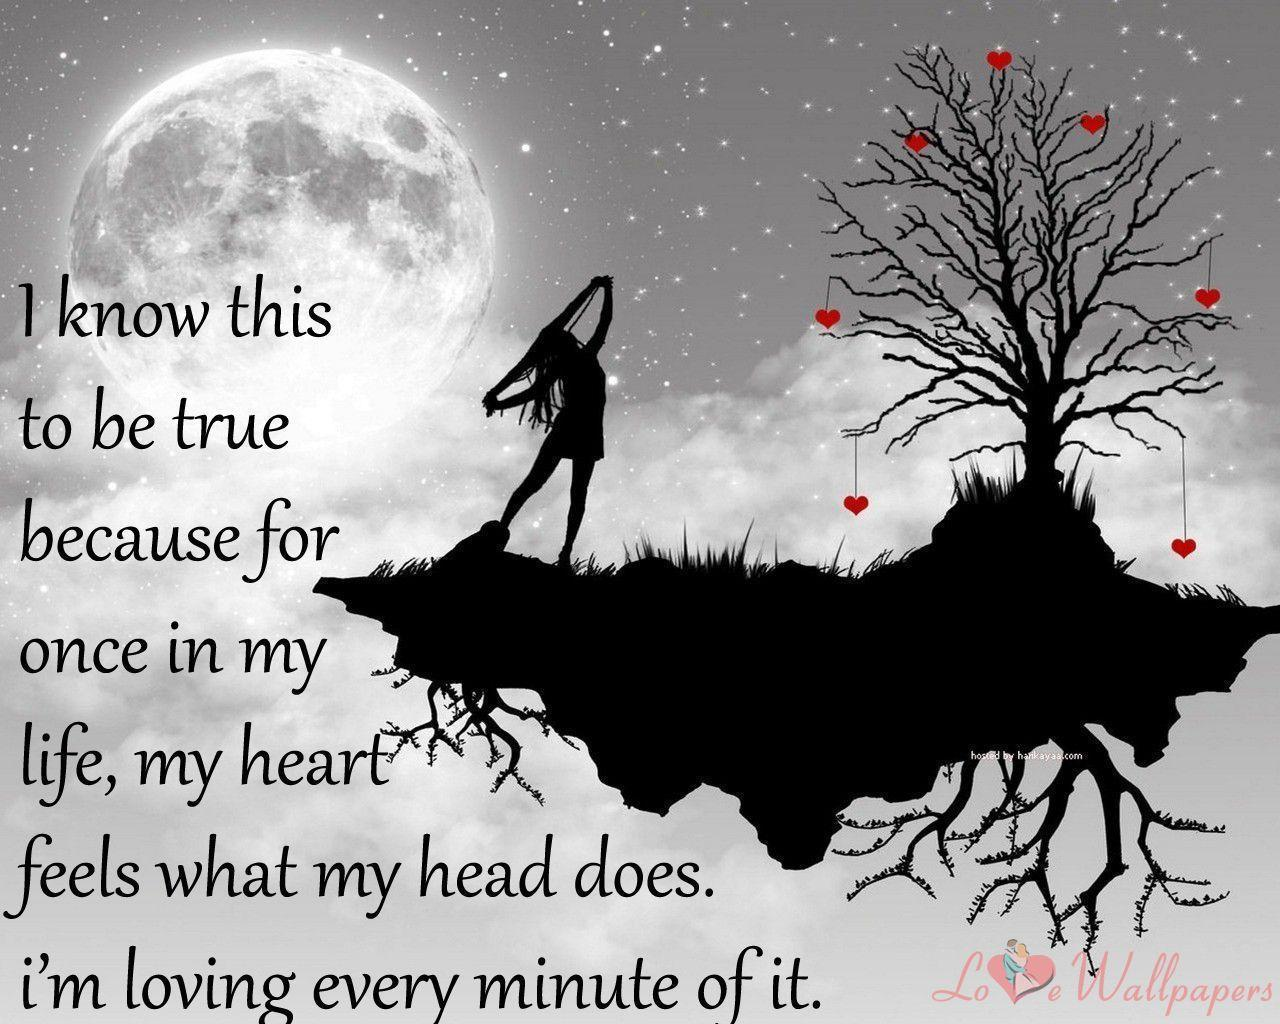 True Love Wallpaper Images : True Love Wallpapers - Wallpaper cave